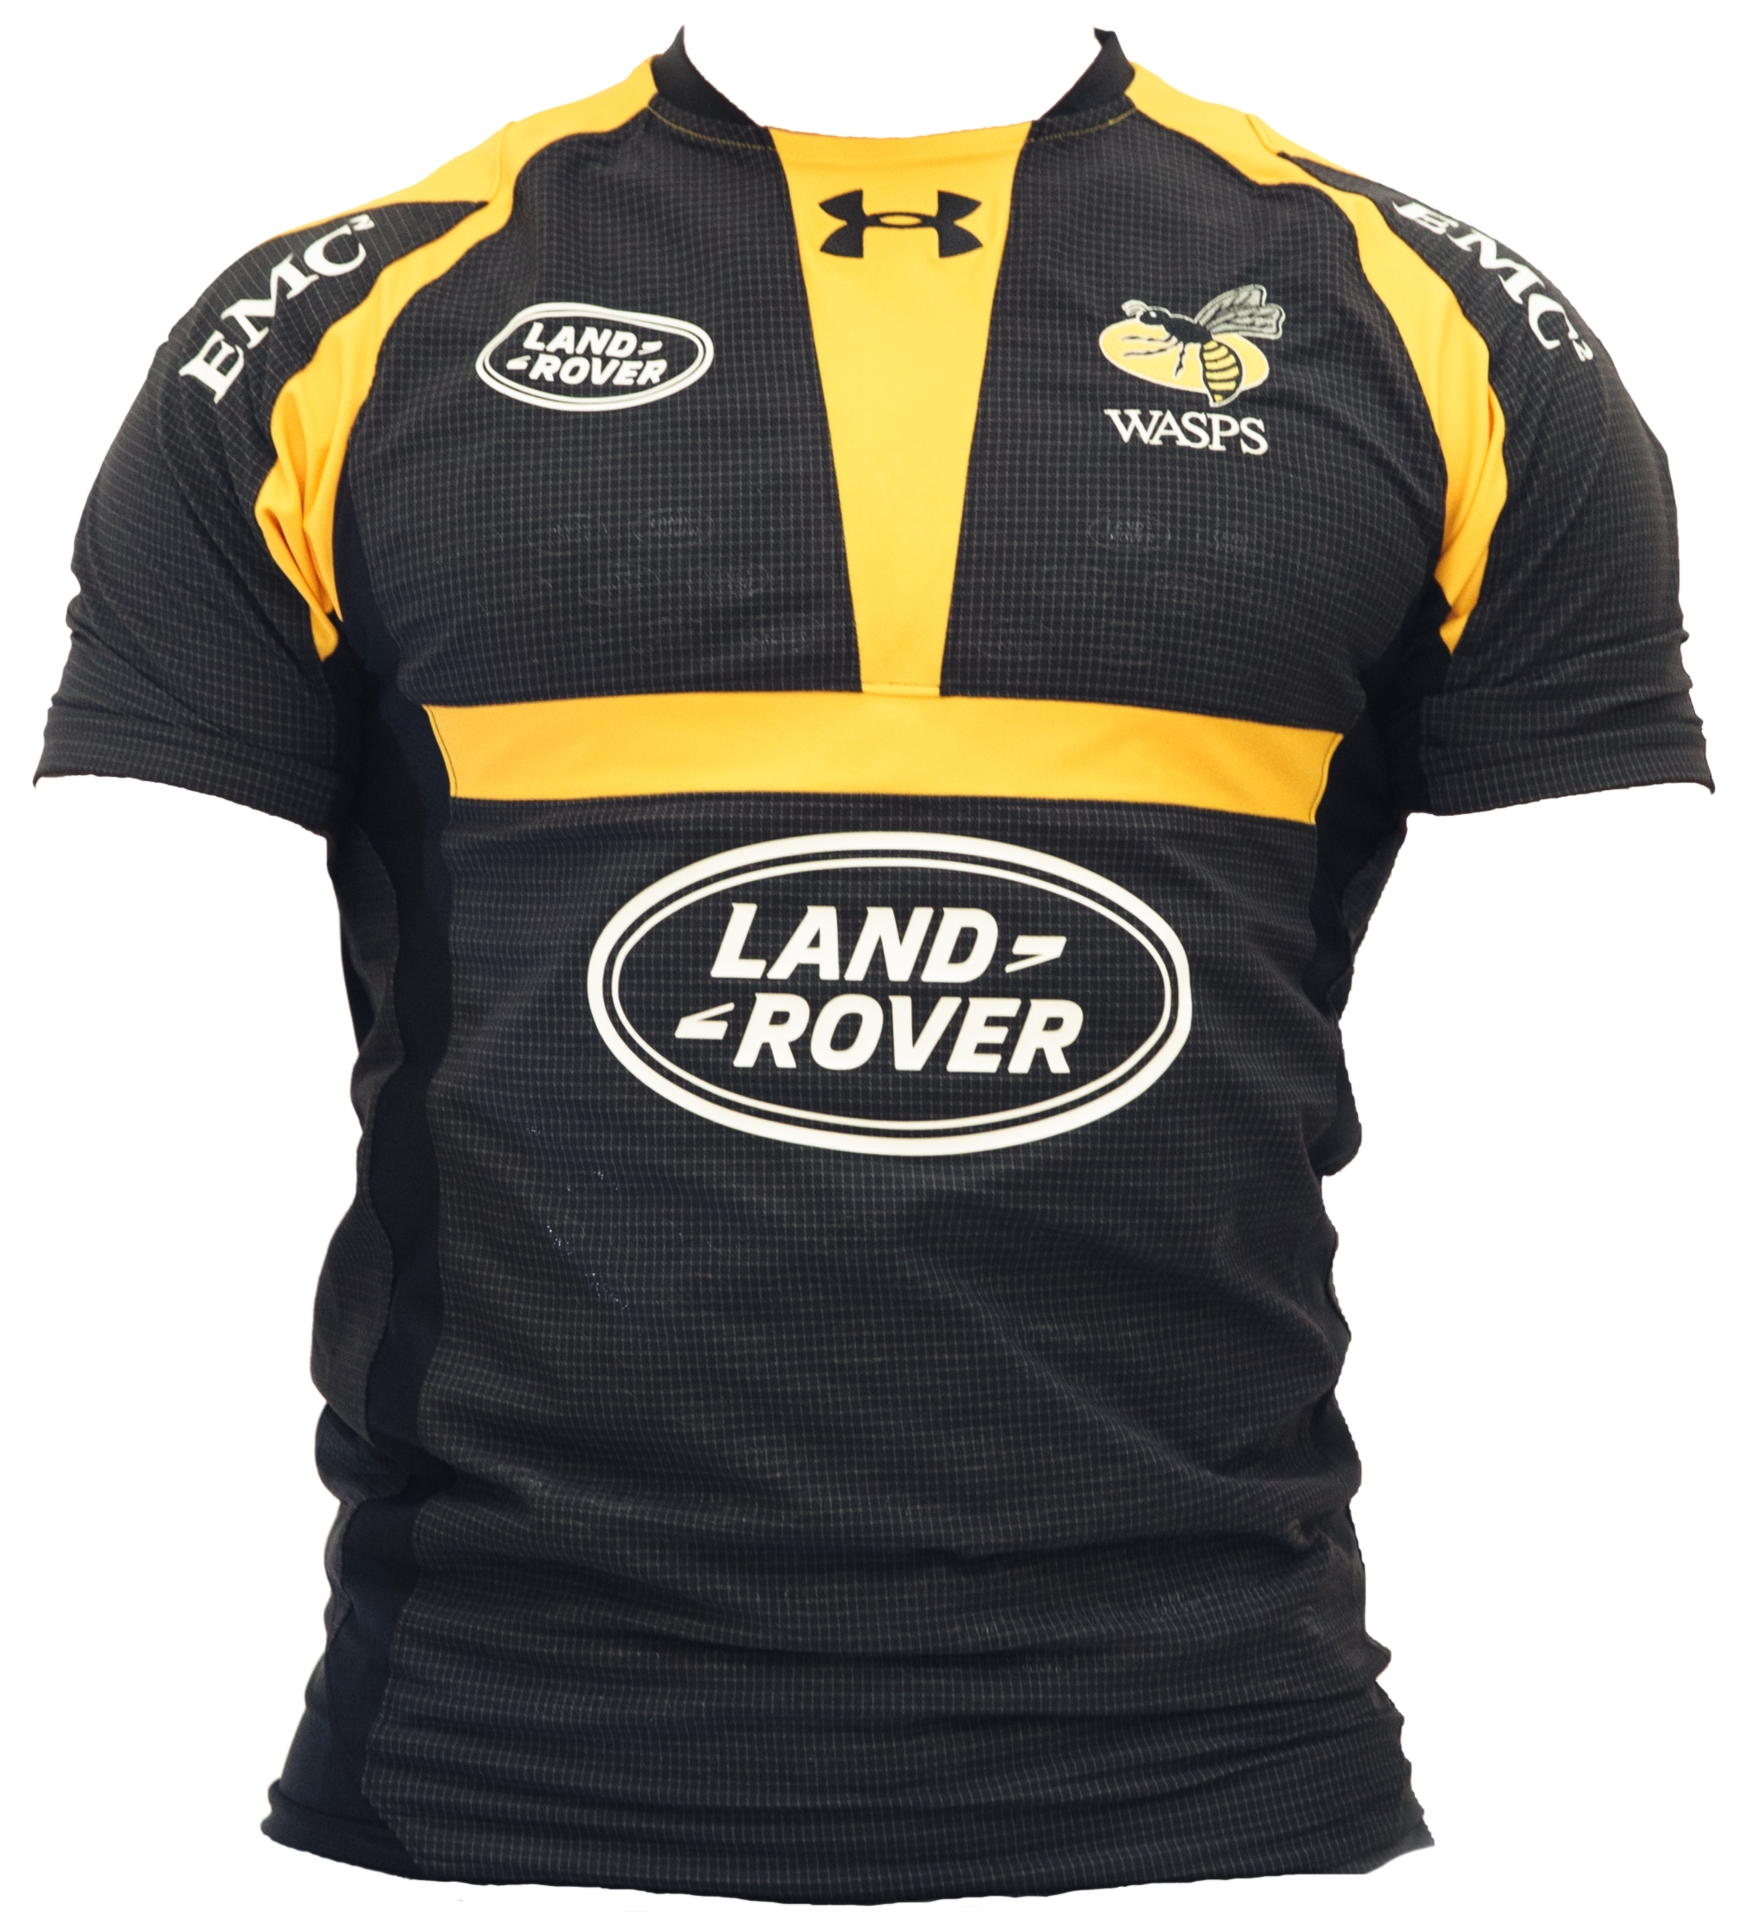 e7f6eae68f4 Wasps RFC Under Armour 2015/16 Home & Alternate Shirts – Rugby Shirt ...